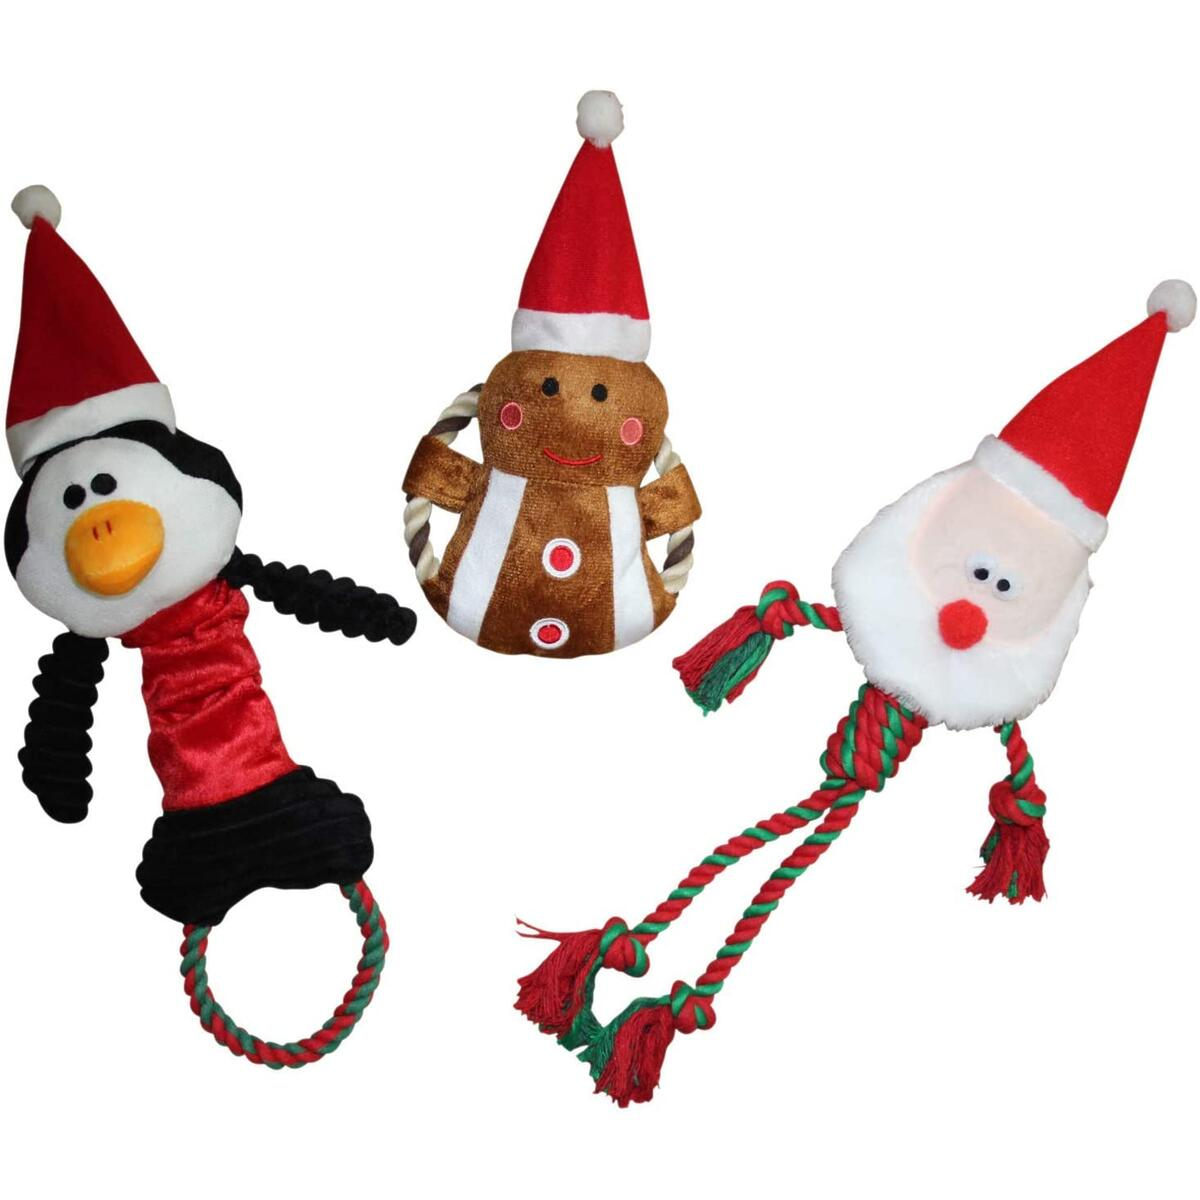 Christmas Dog Toys Trio - Plush Squeaky Dog Toys with Minimal Stuffing - 3 Pack Santa, Penguin, Gingerbread Man Gifts for Dogs